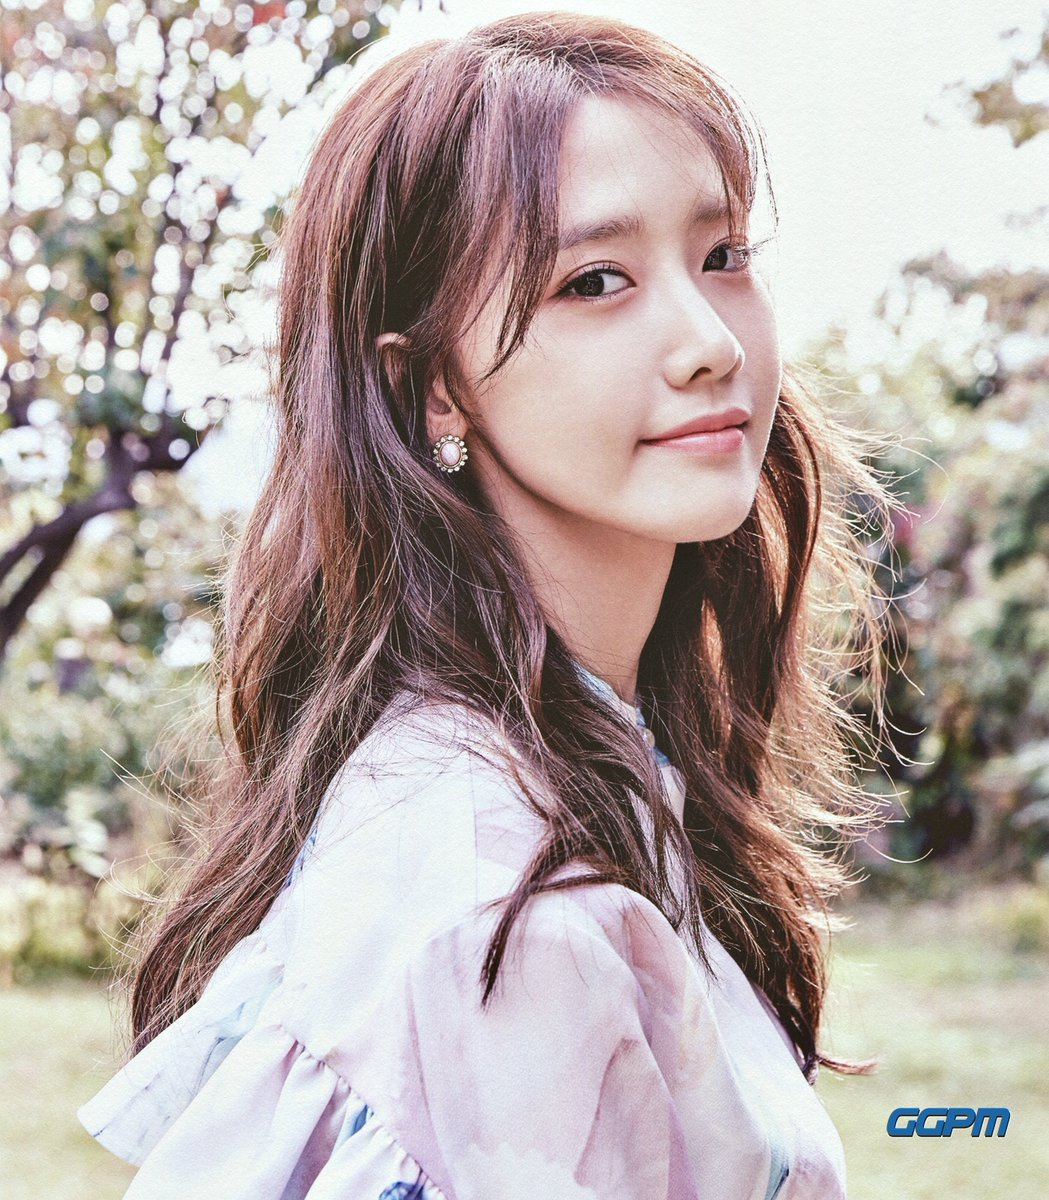 Yoona 2017 SEASON'S GREETINGS 'Ordinary Days'